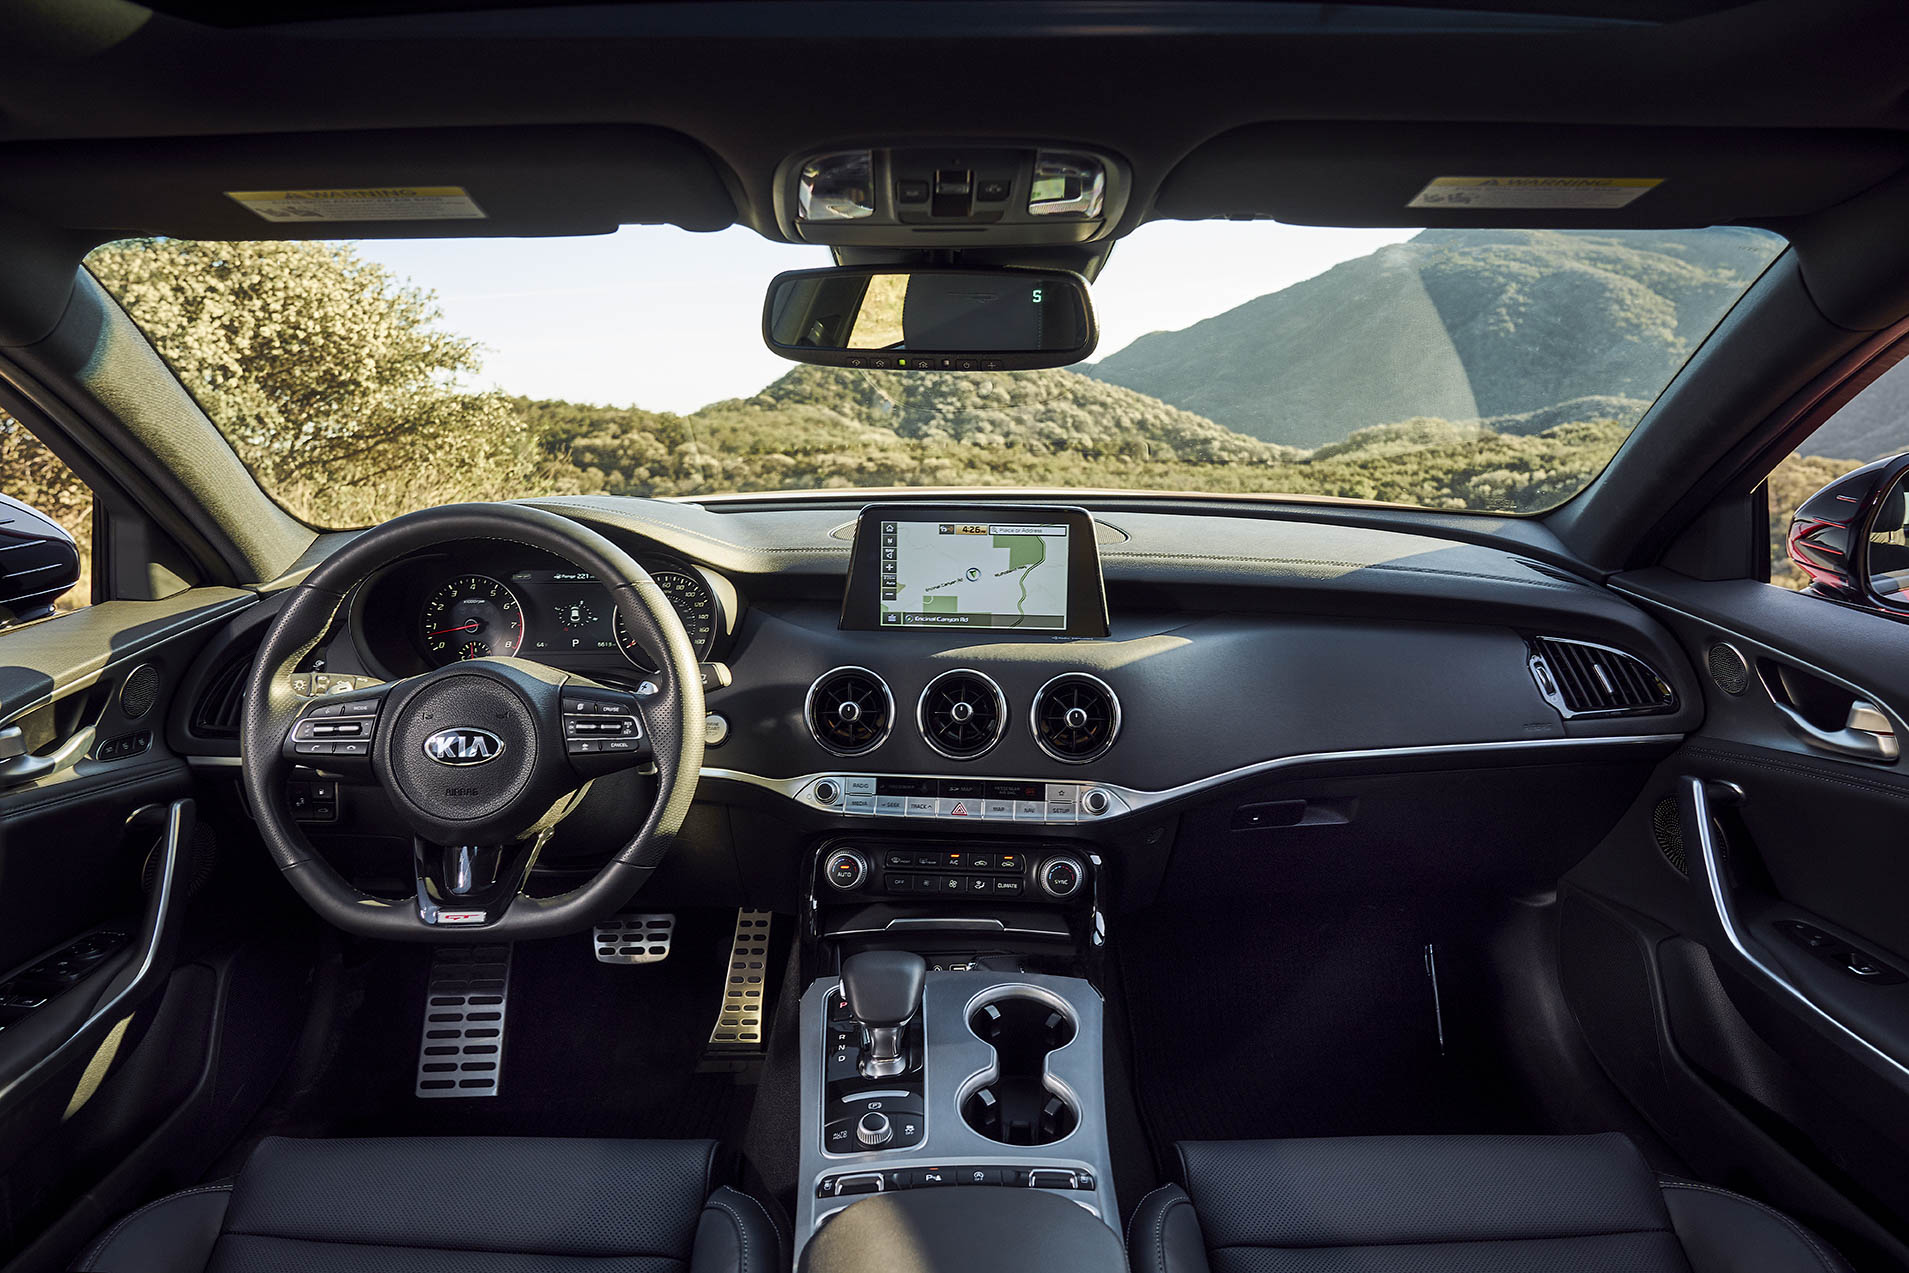 All is modern in the new Kia, with the requisite display screen and banks of buttons. But as you can see, circular dials and vents still convey sportiness, even after 50 years.